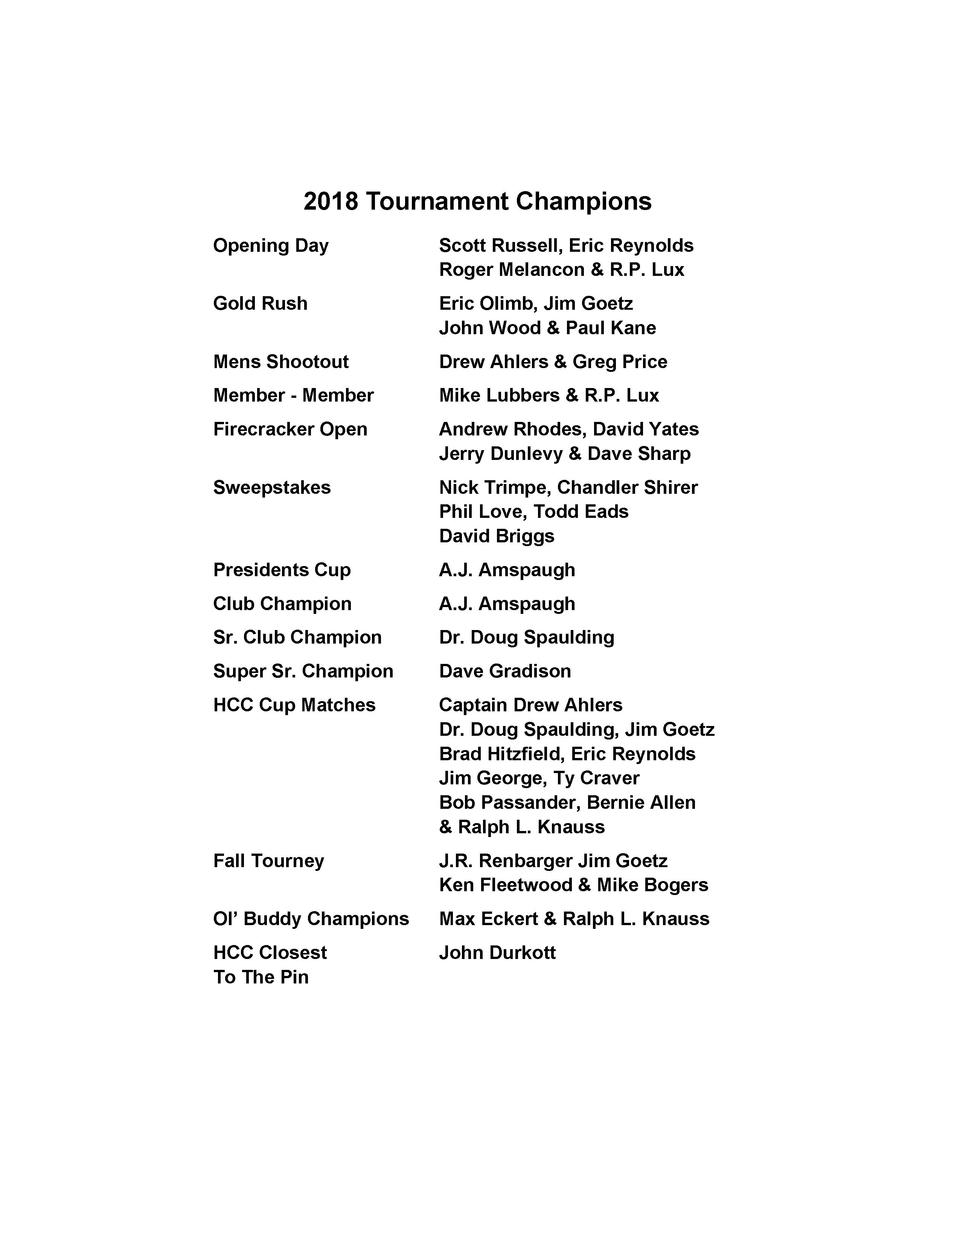 2018 Tournament Champions Opening Day  Scott Russell, Eric Reynolds Roger Melancon   R.P. Lux  Gold Rush  Eric Olimb, Jim ...